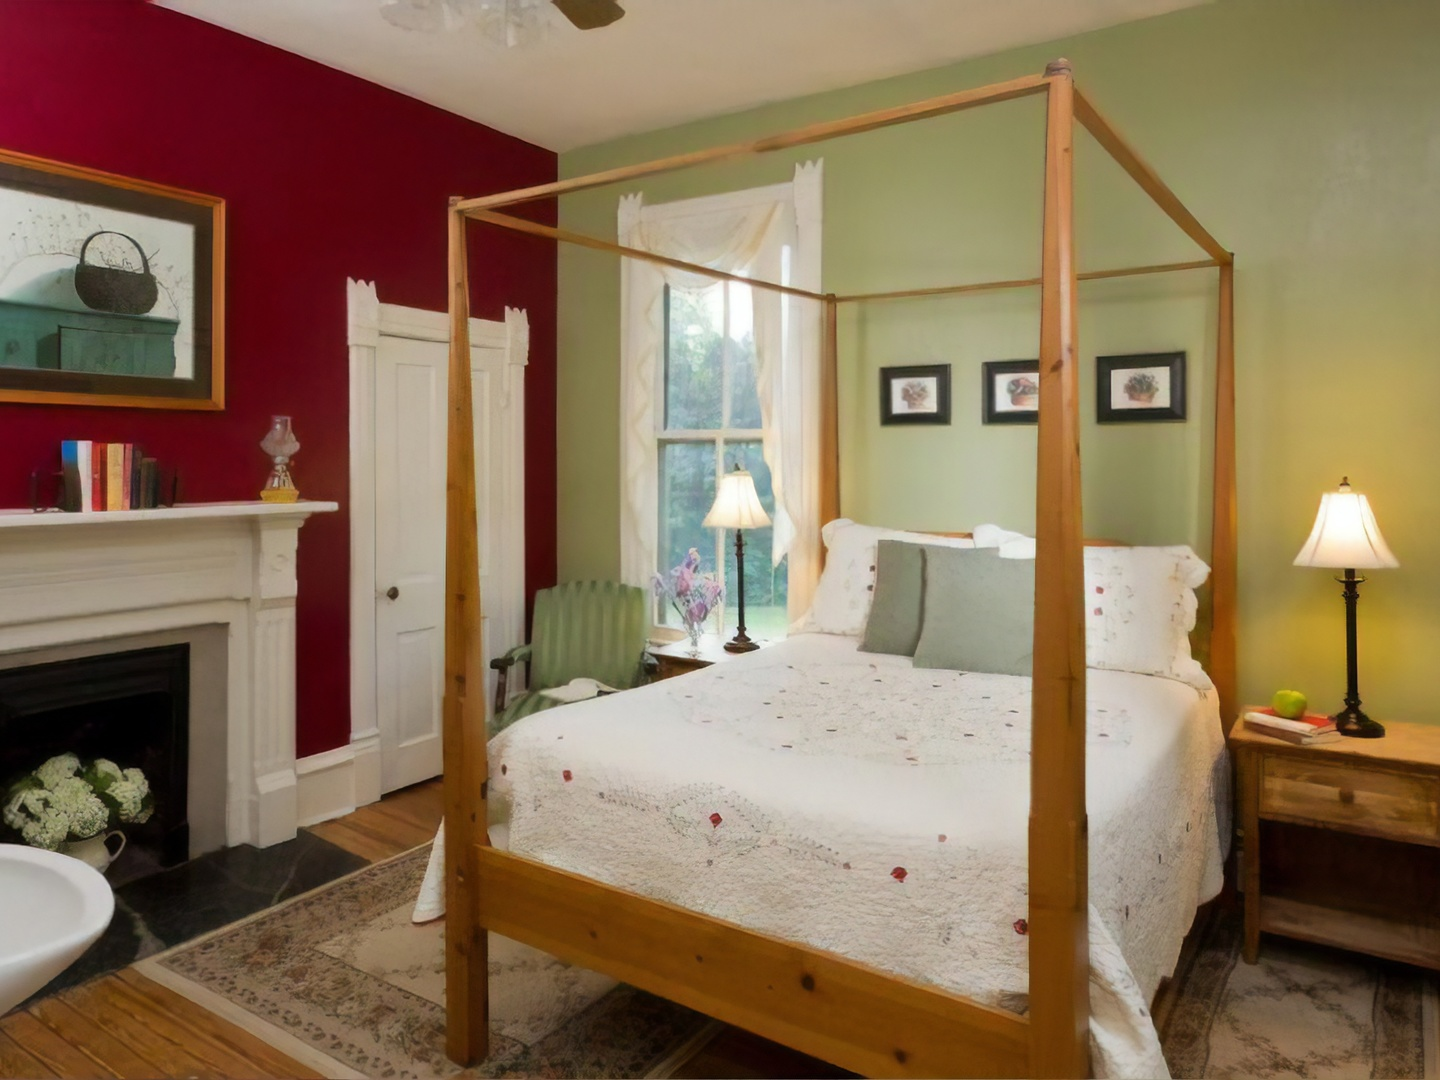 A bedroom with a large bed in a room at Afton Mountain Bed & Breakfast.